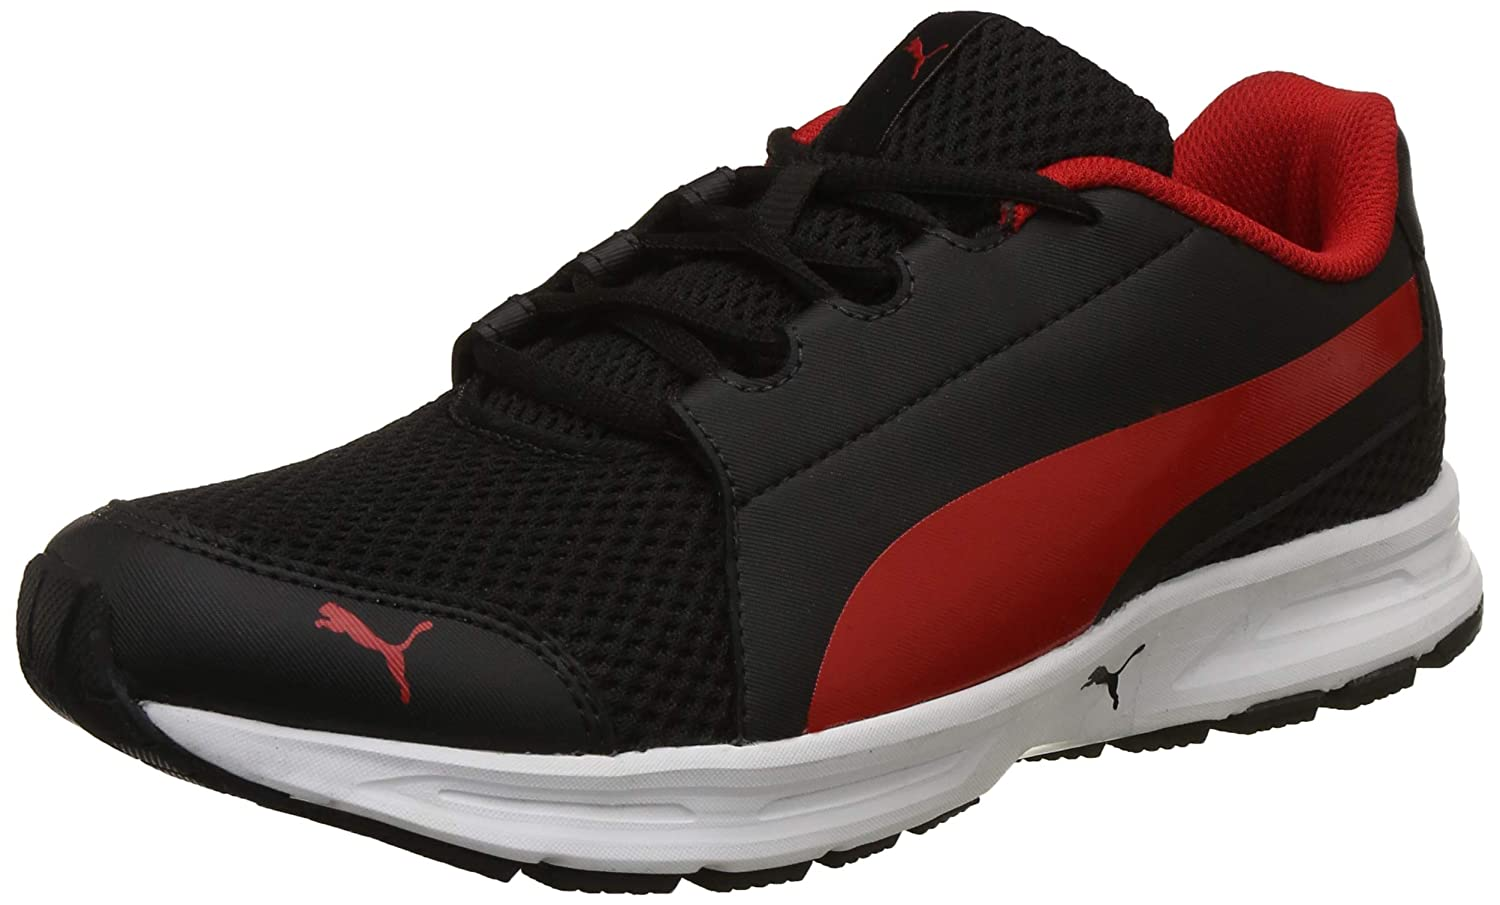 cc6b146f2297 Puma Men s Running Shoes  Buy Online at Low Prices in India - Amazon.in